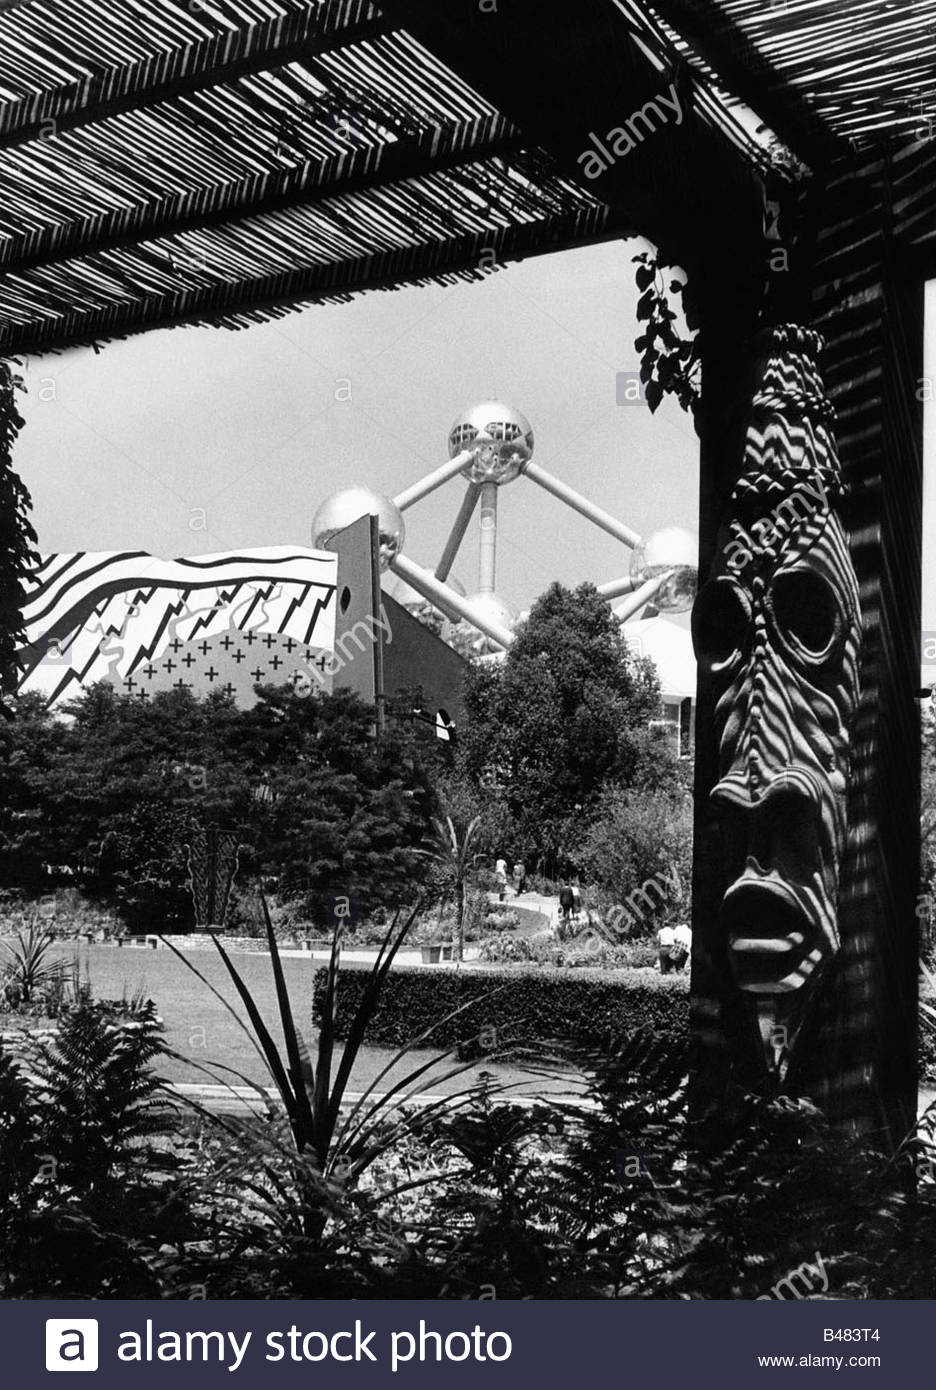 exhibition, world exposition, garden of orchids, Atomium, Brussels, Belgium, 1958, Artist's Copyright must also - Stock Image